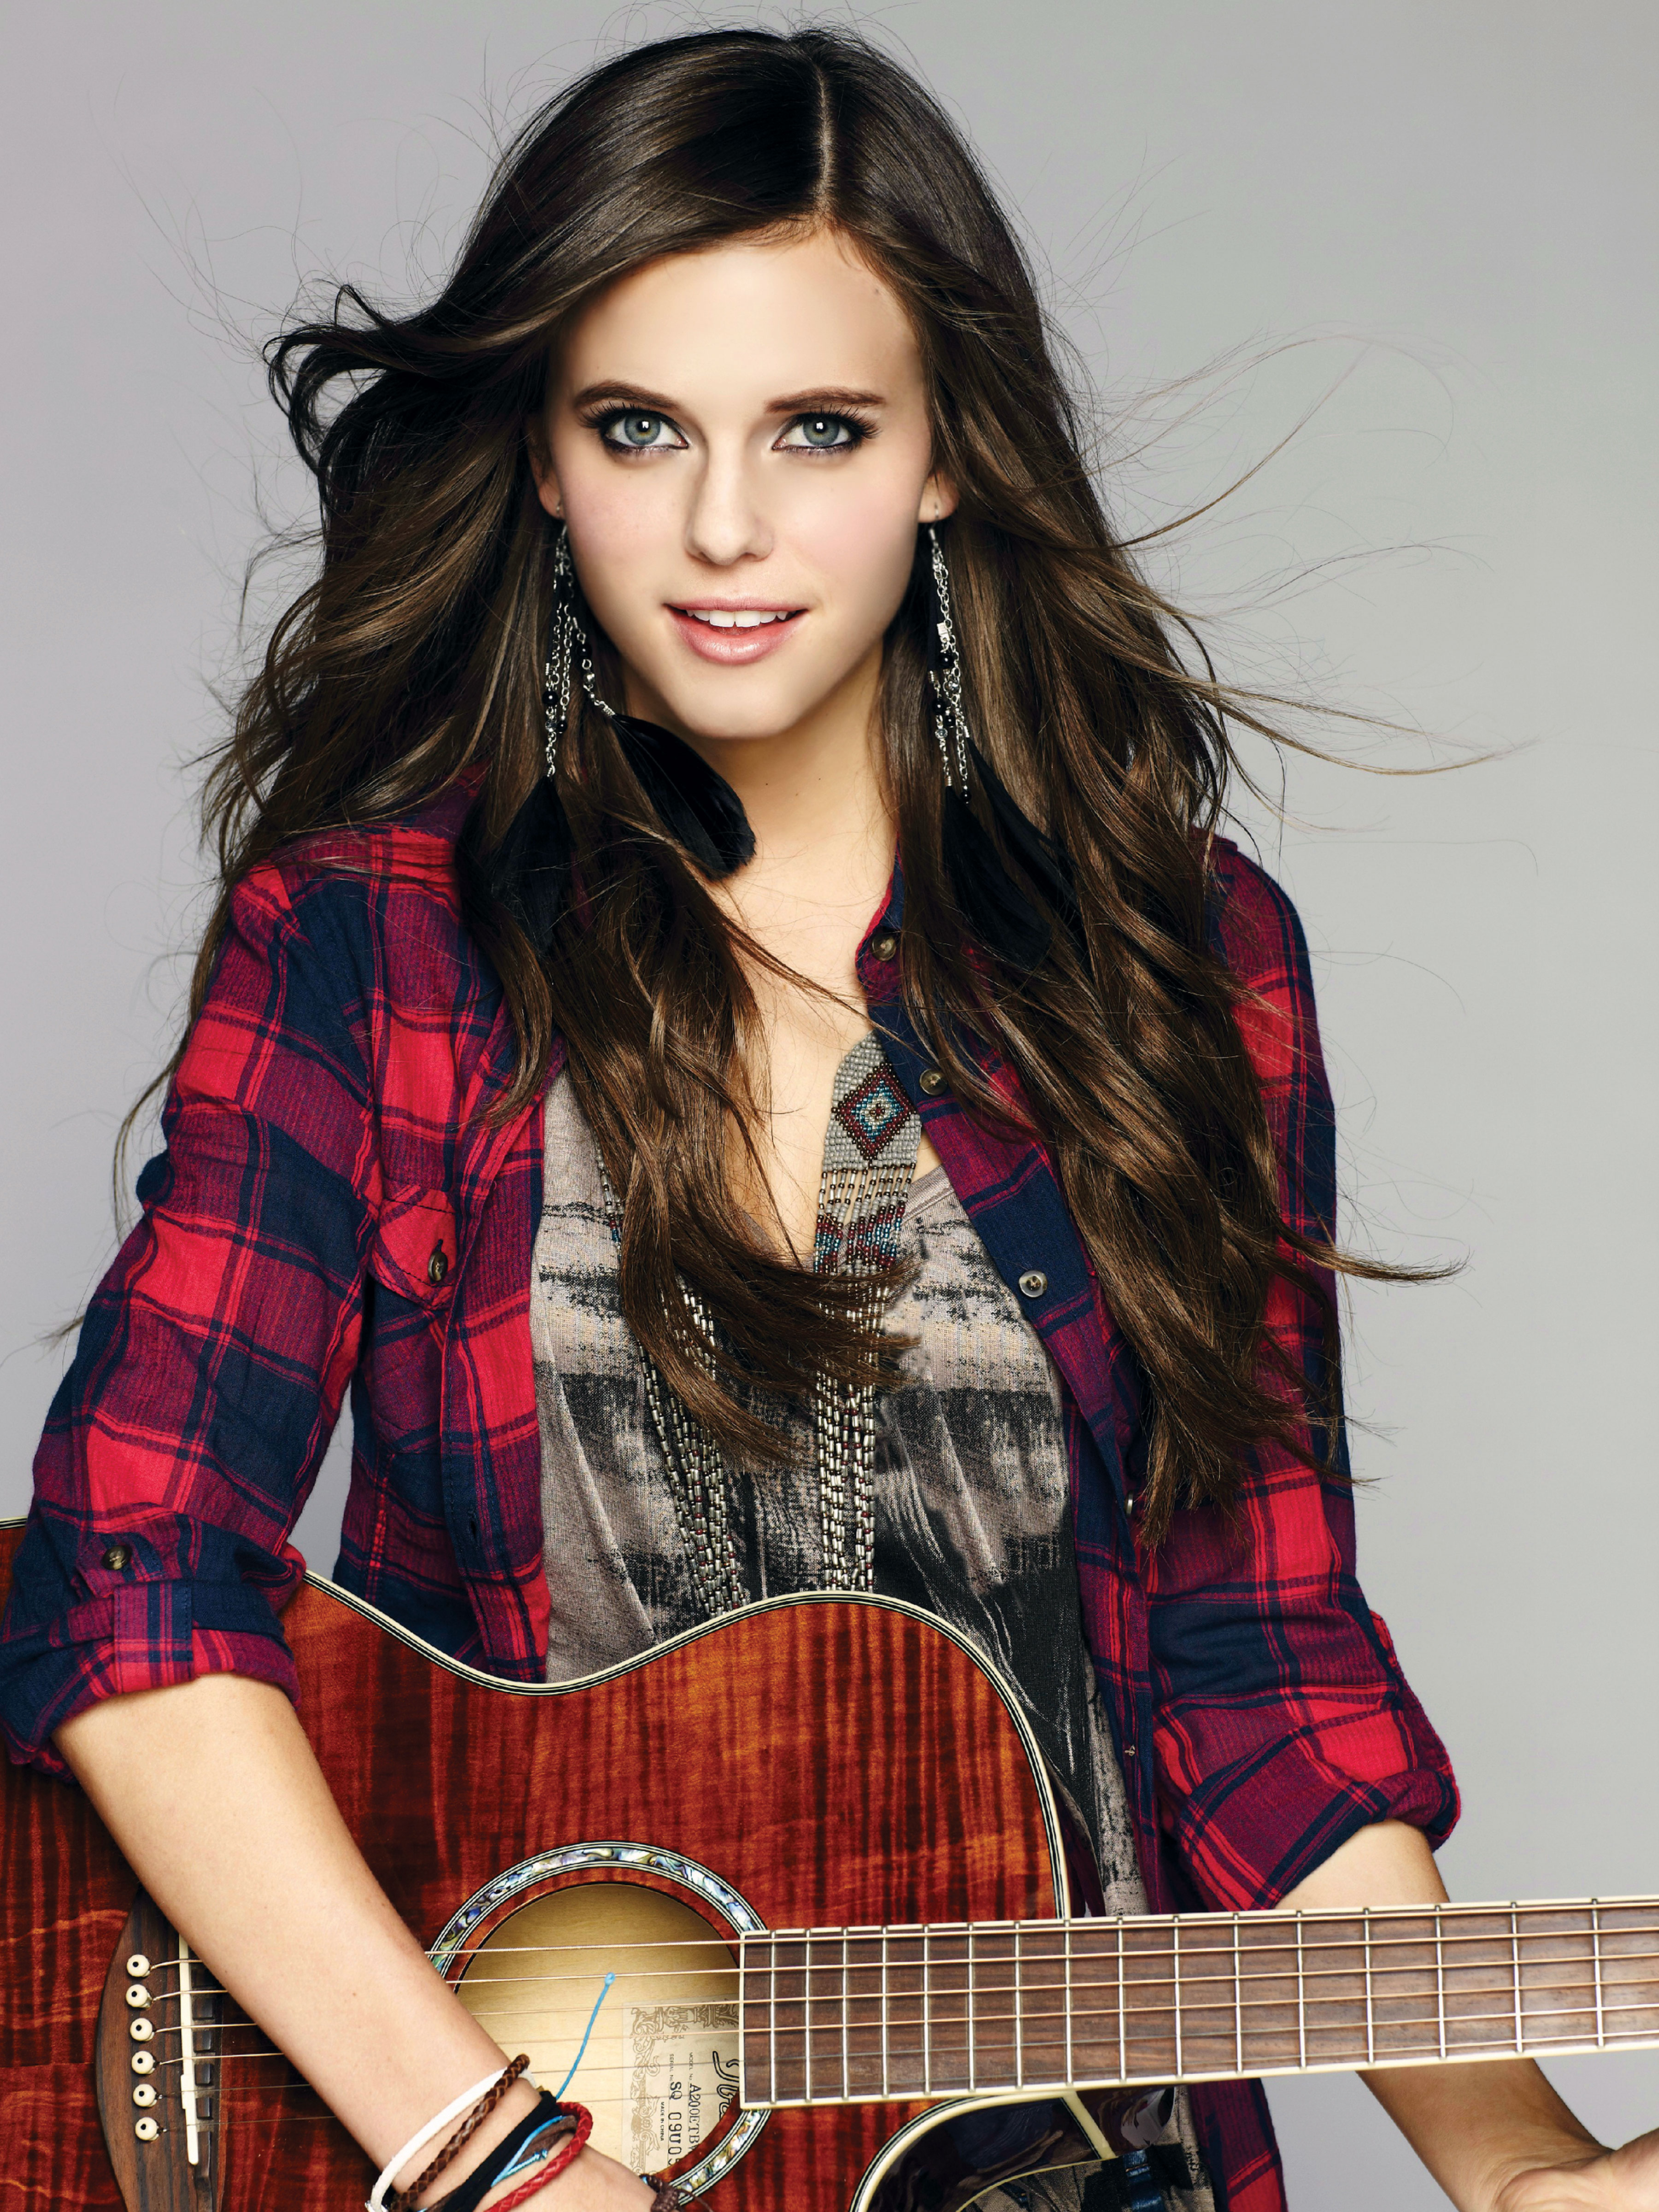 Tiffany Alvord 'LIVE' in Singapore + INTERVIEW!